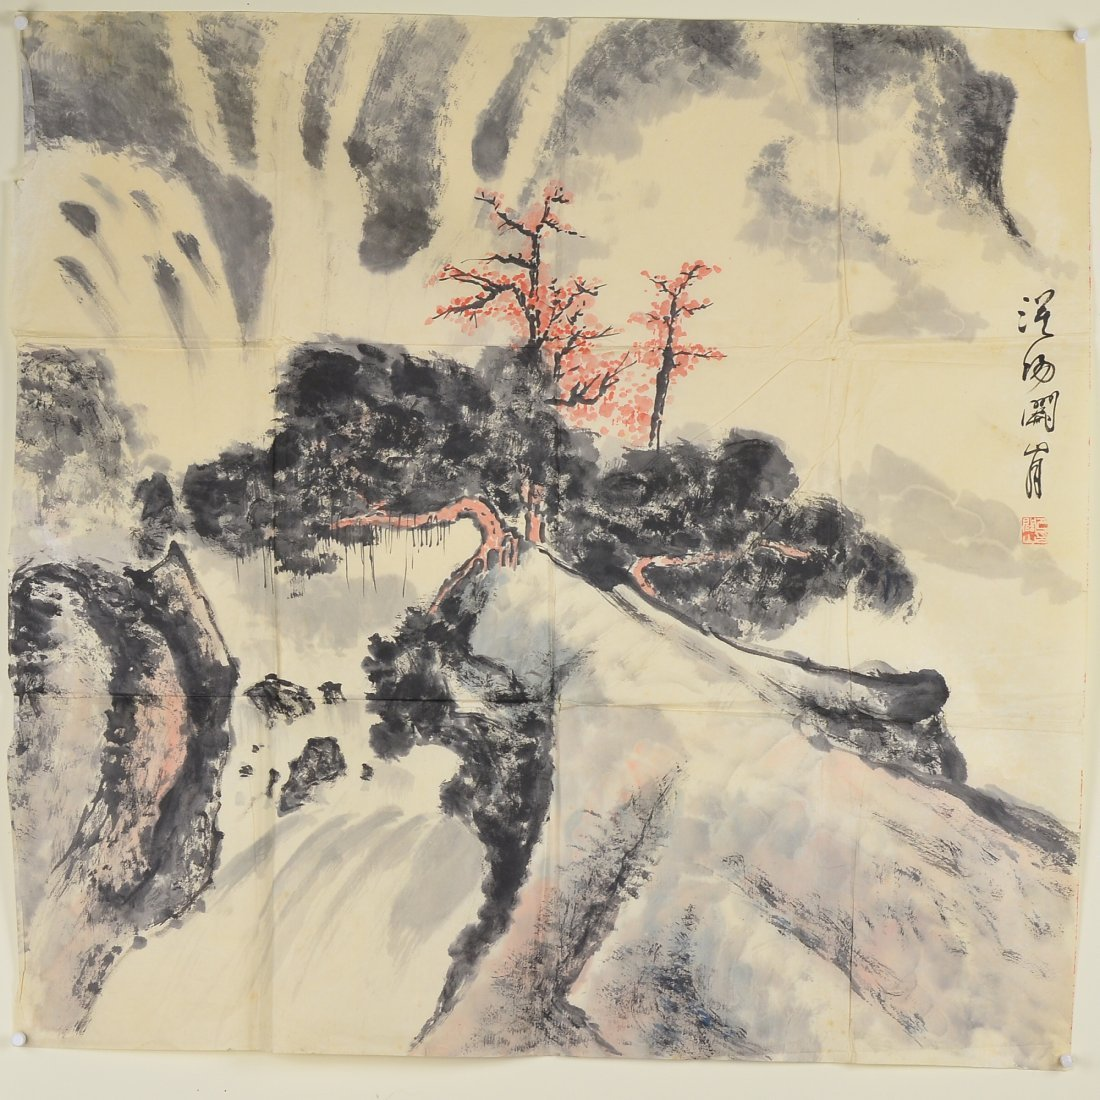 17: Set of 3 Chinese Watercolour Paintings